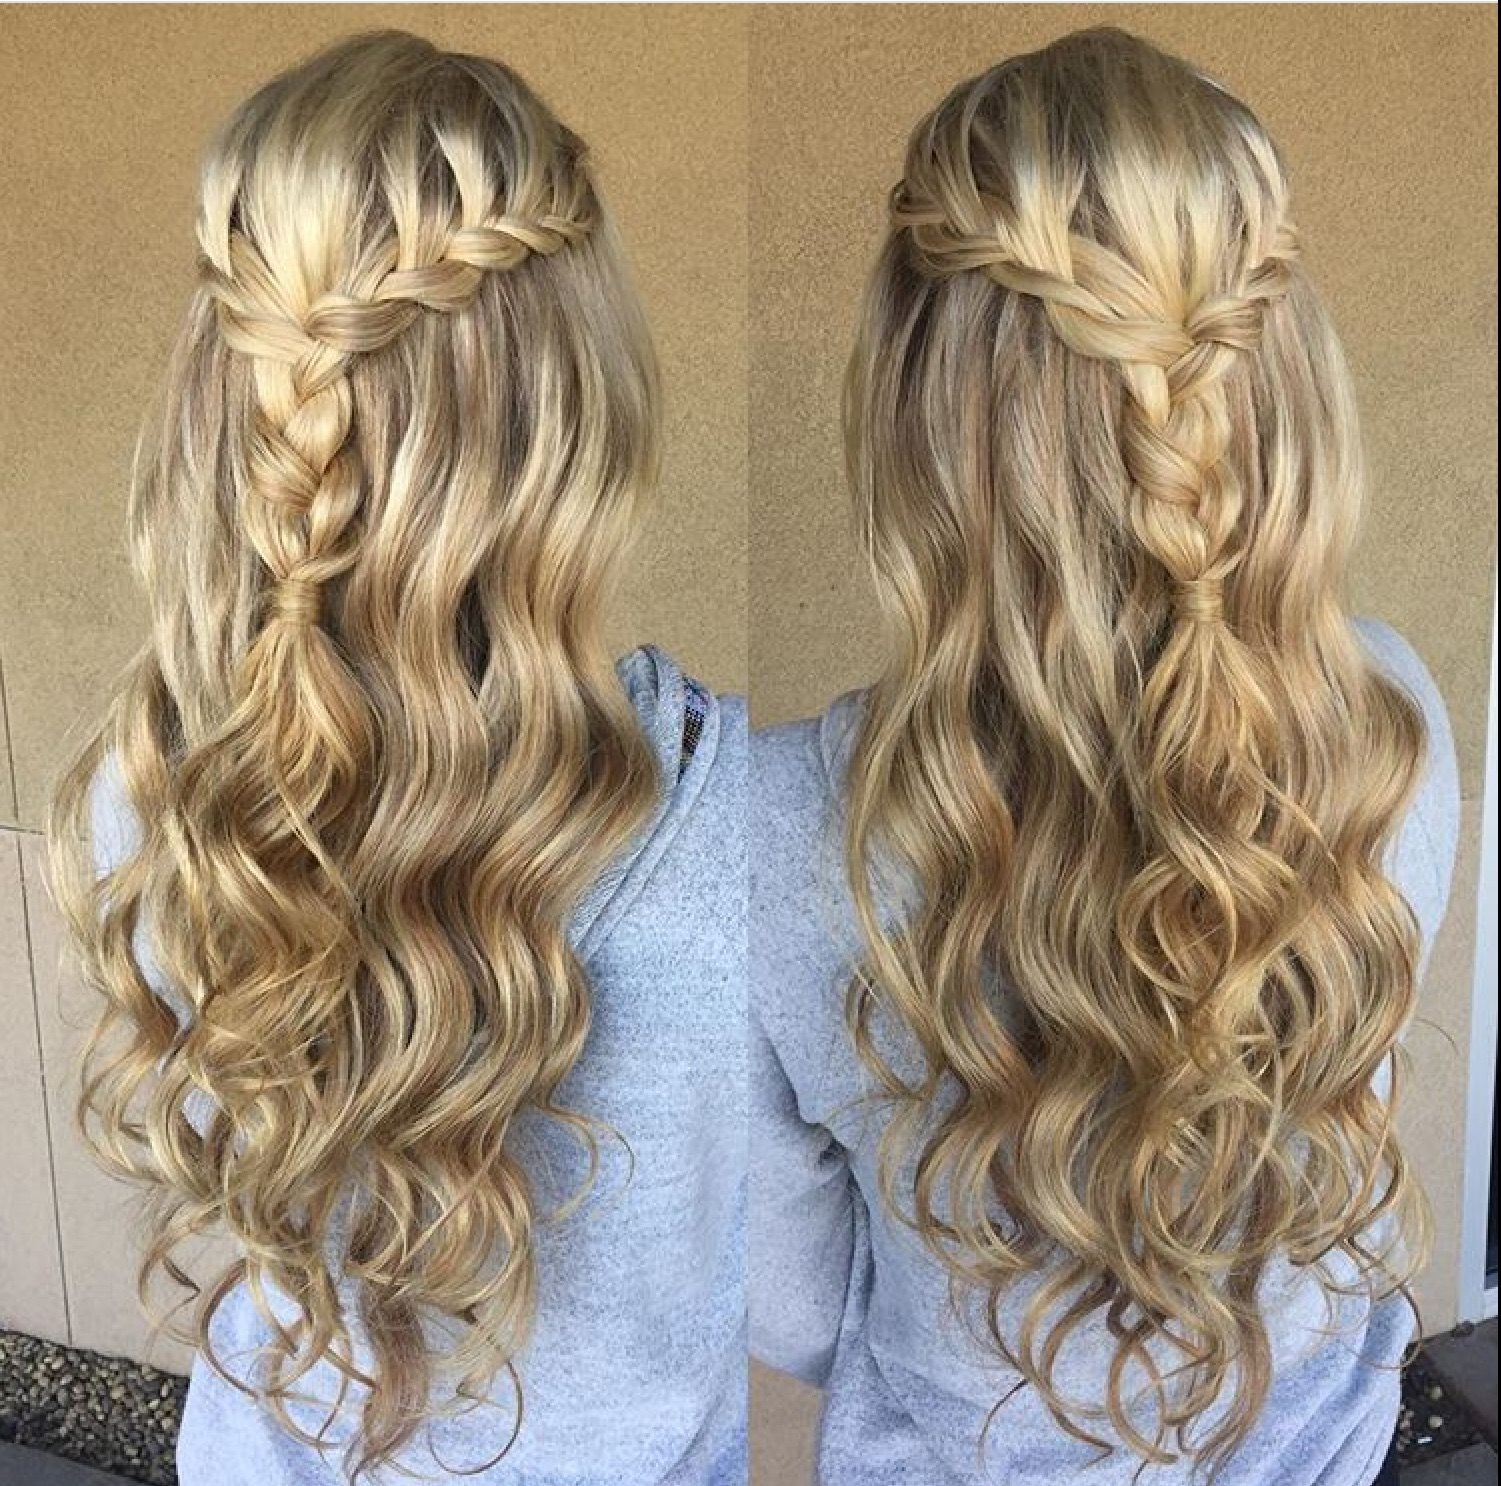 Pin By Meghan Long On Hair In 2020 Long Hair Wedding Styles Prom Hairstyles For Long Hair Braided Prom Hair